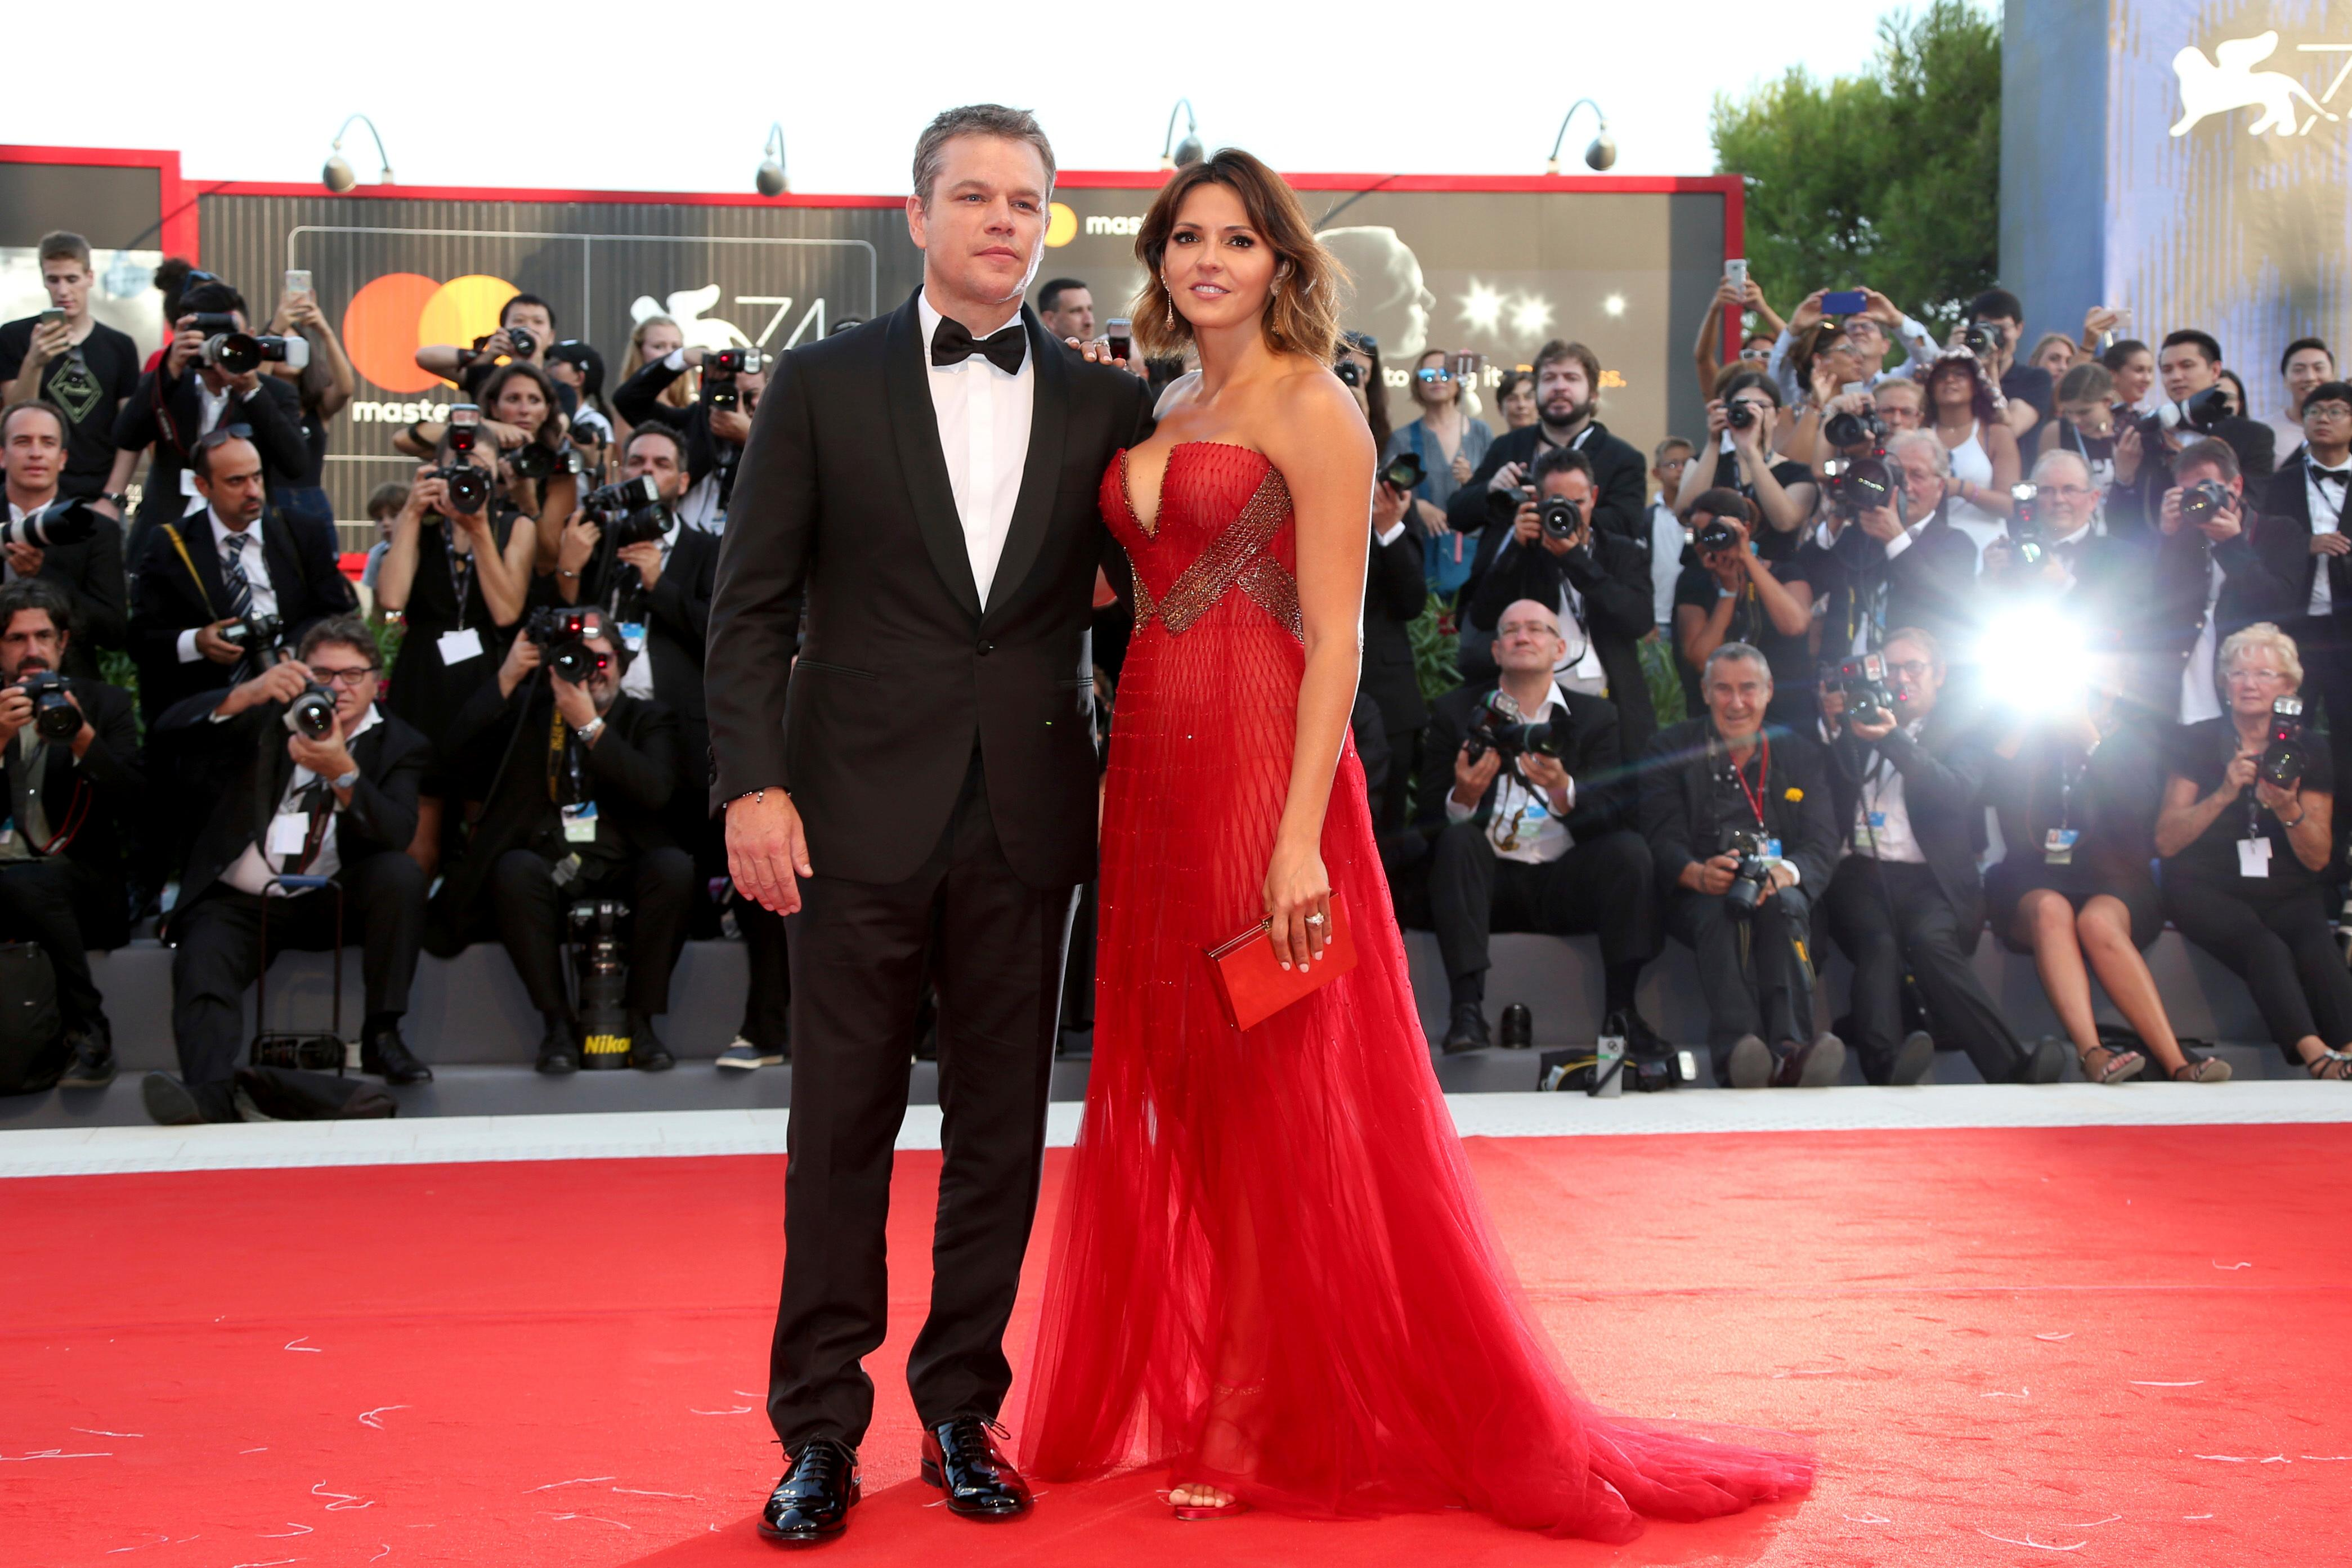 Actor Matt Damon, left, and his wife Luciana Barroso pose for photographers at the premiere of the film 'Downsizing' which opens the 74th edition of the Venice Film Festival in Venice, Italy, Wednesday, Aug. 30, 2017. (Photo by Joel Ryan/Invision/AP)